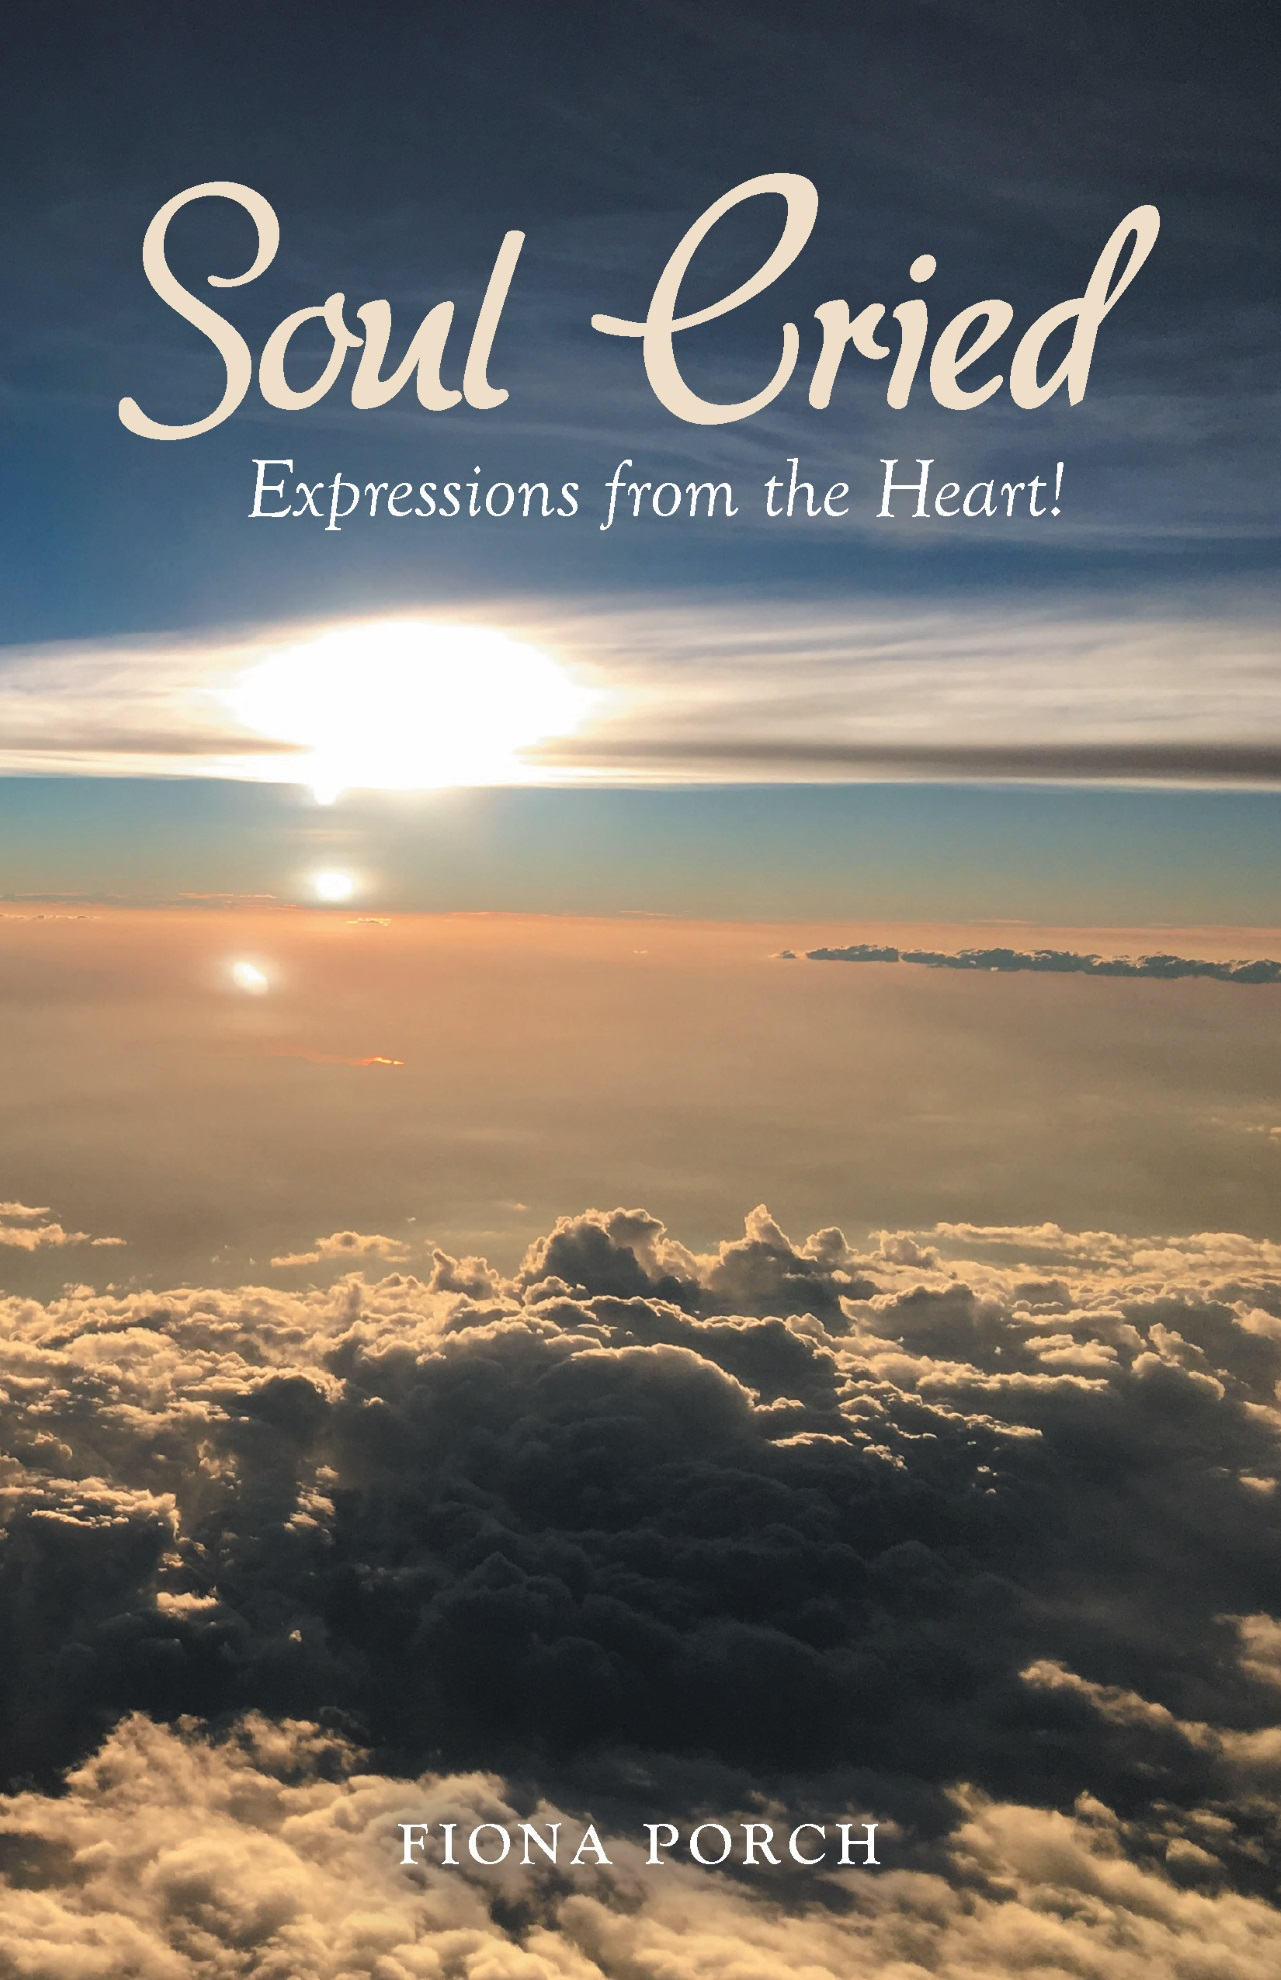 Soul Cried Poetry Book